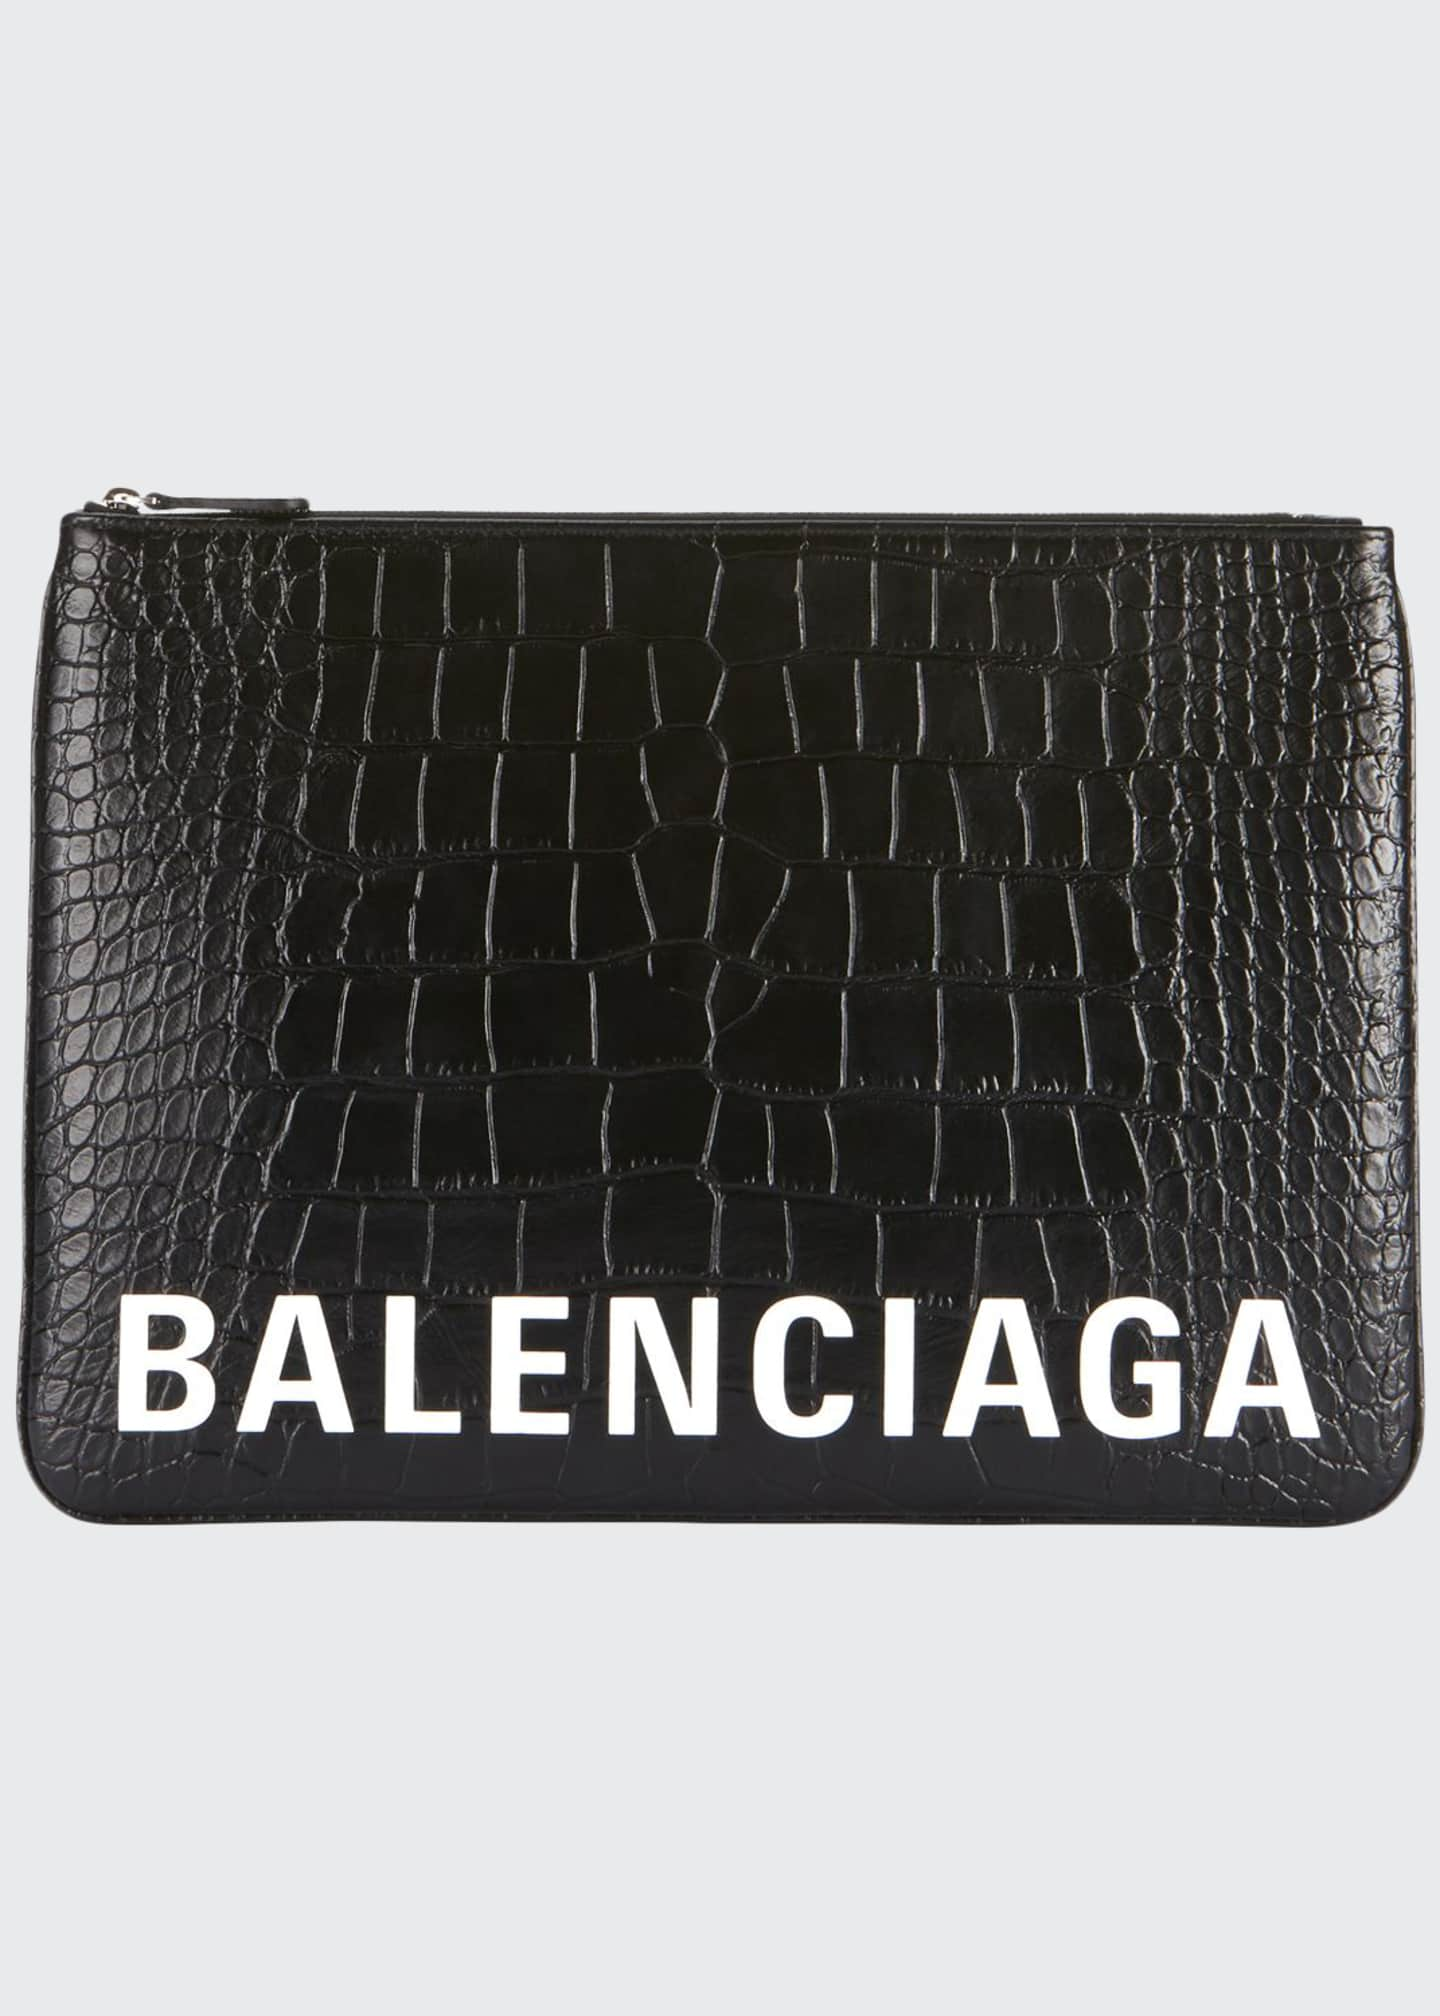 Balenciaga Men's Ville Croc-Embossed Leather Pouch Bag